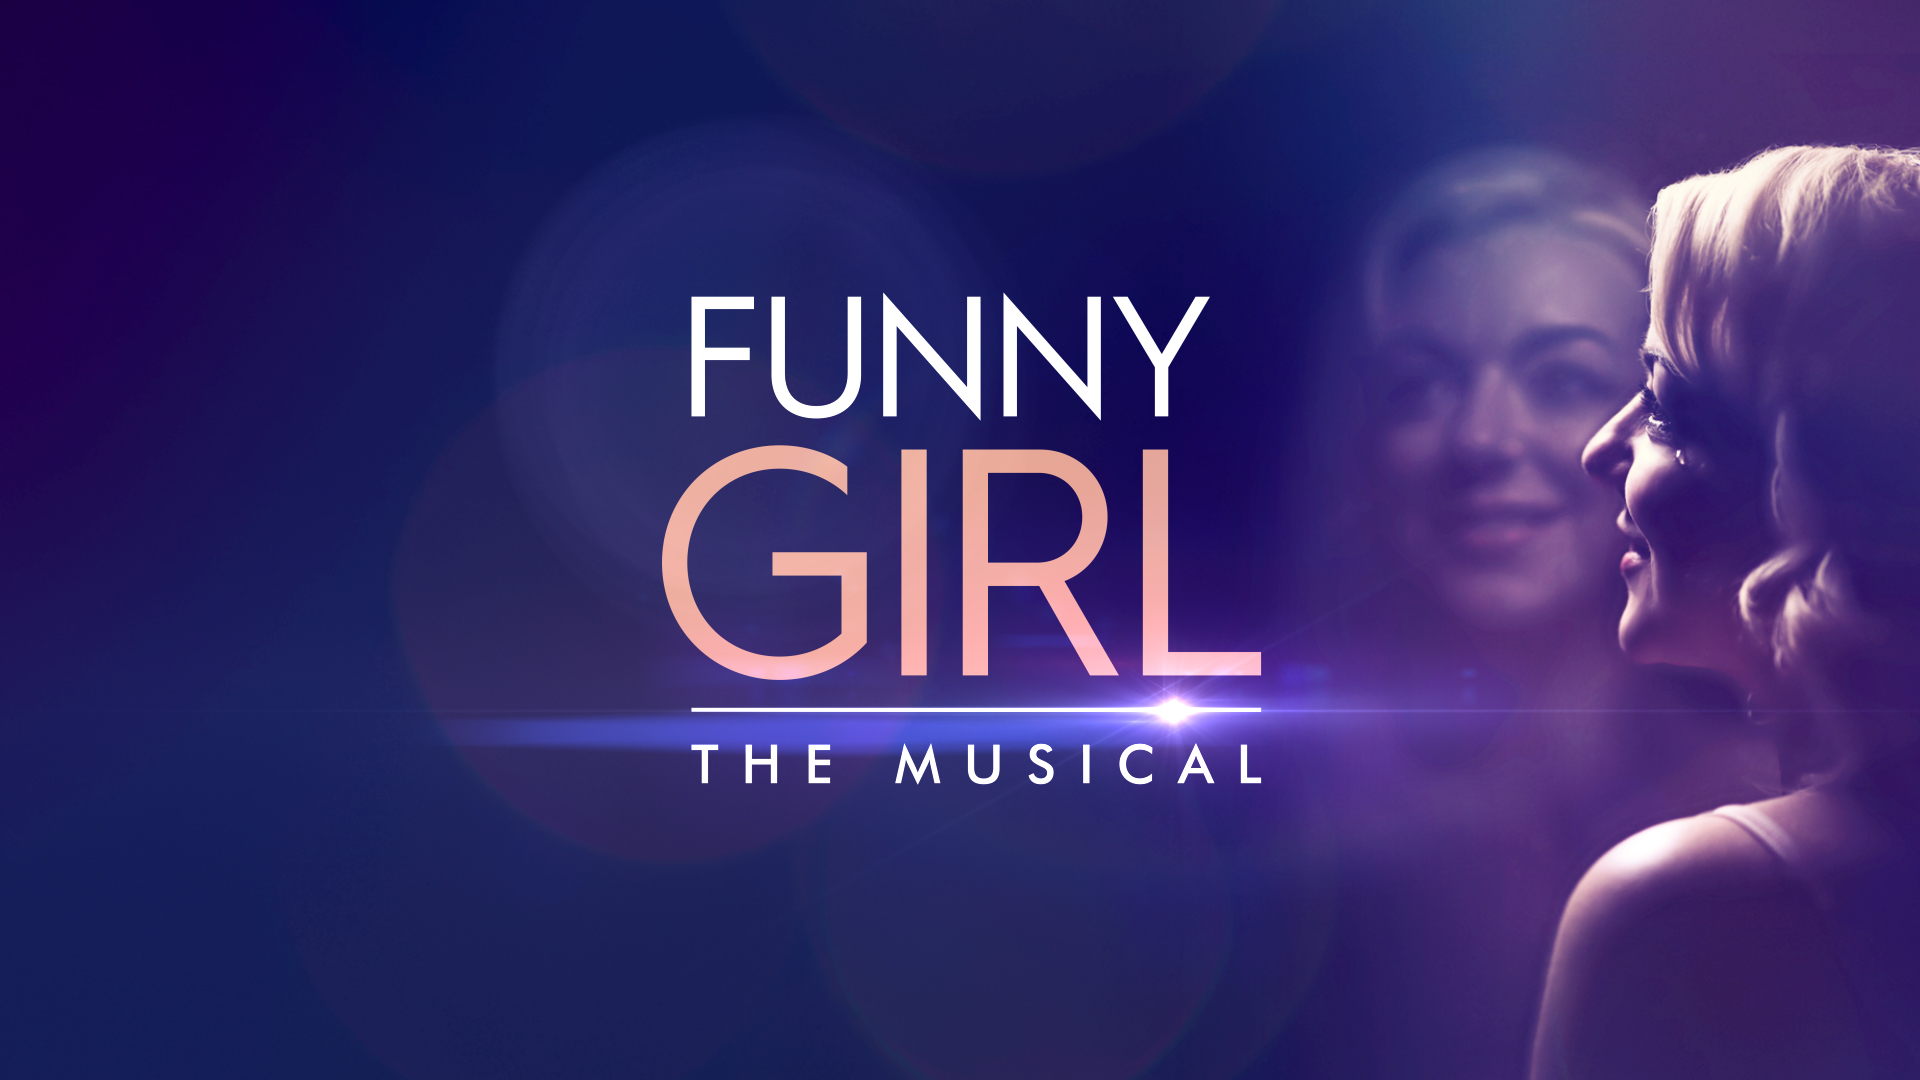 Funny Girl, musical trailer, funny girl trailer, trailer production, trailer design, movie trailer, film trailer, trailer agency